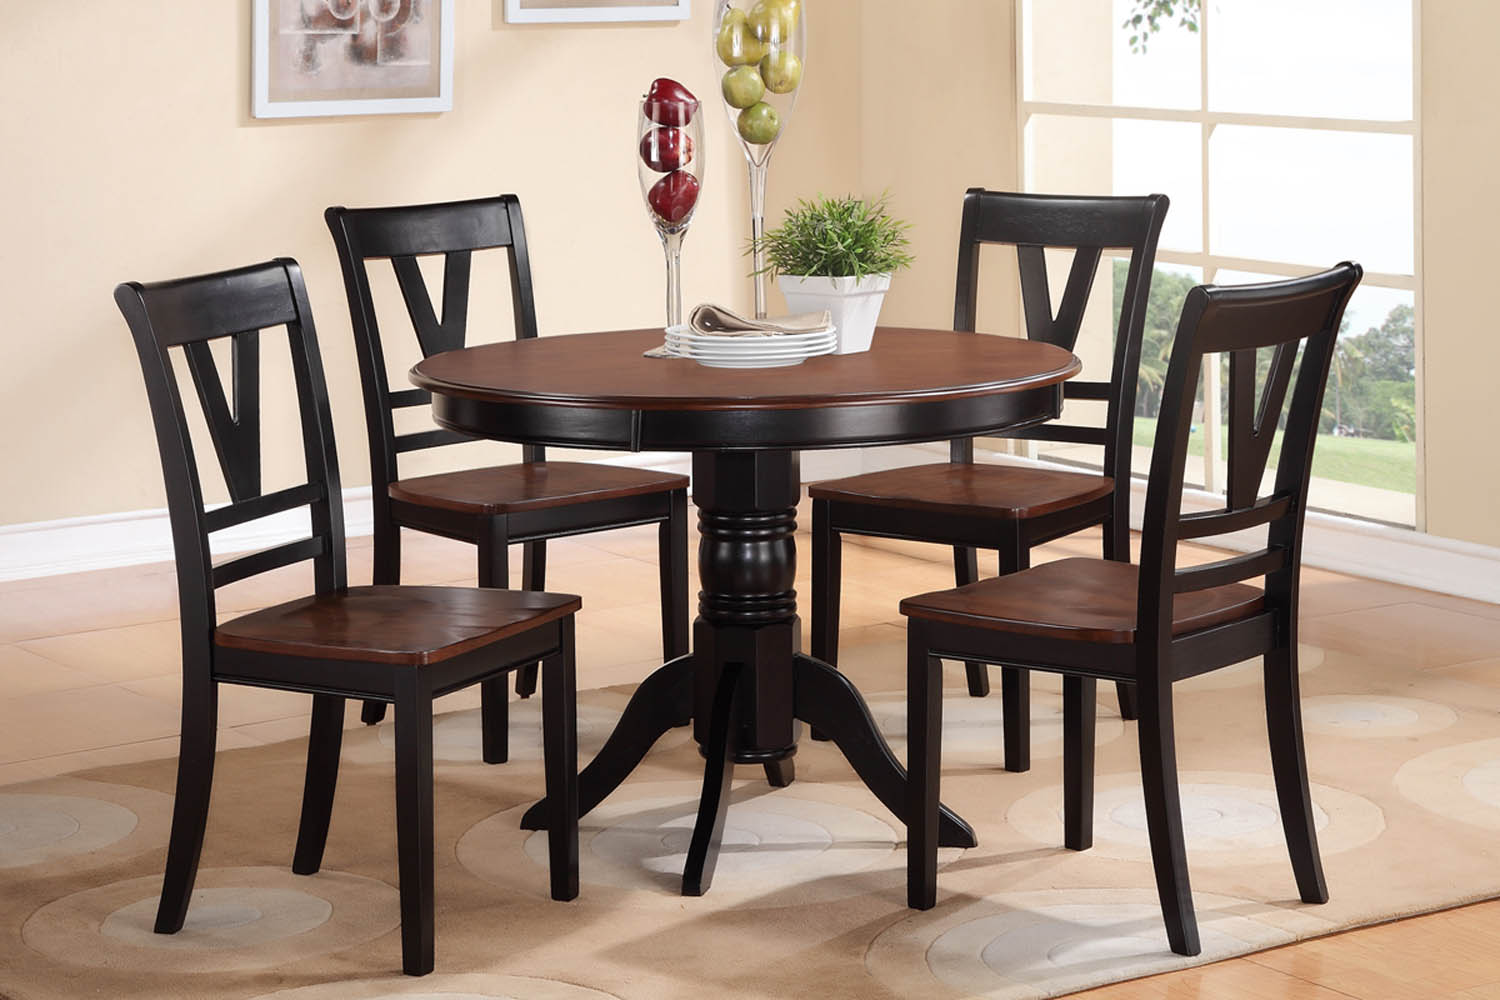 5 Piece Round Solid Wood Table Set- color option